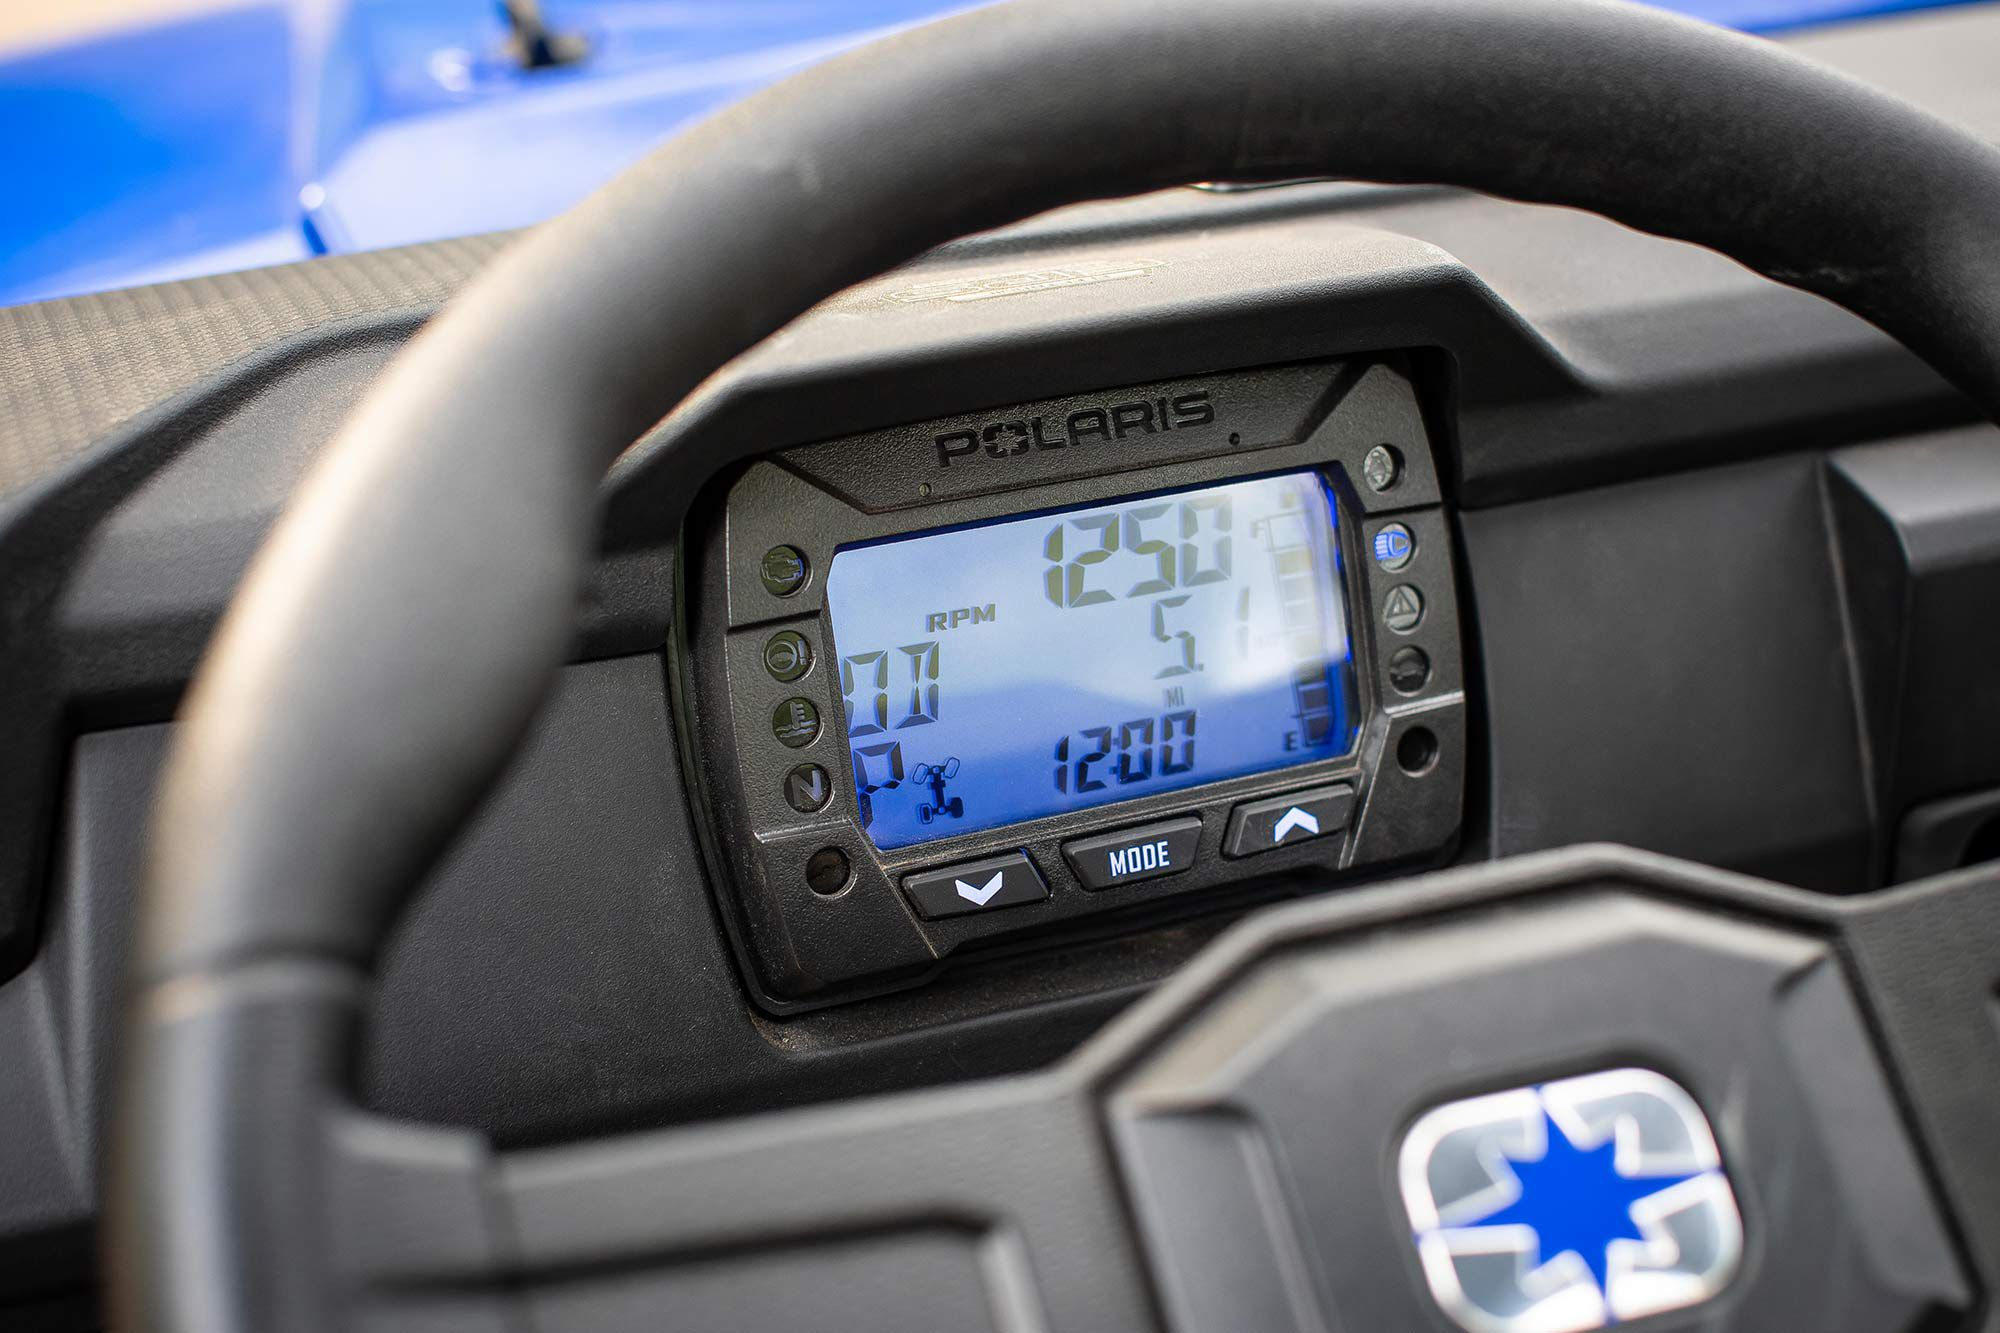 Simple gauges dominate the dash, but Ride Command is now also available.